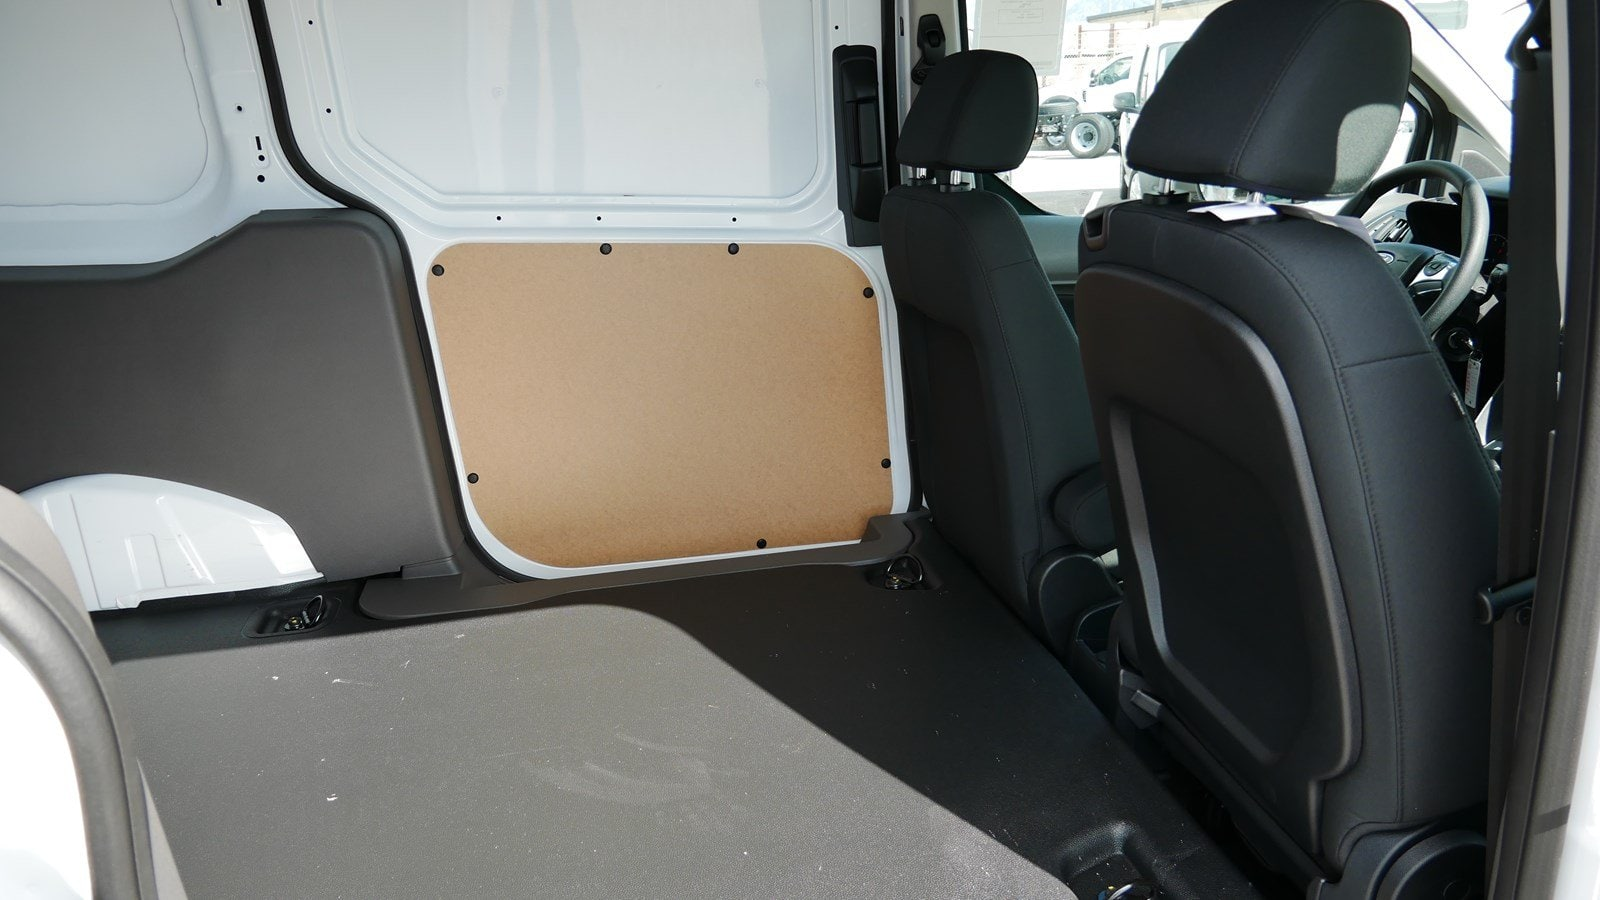 2019 Transit Connect 4x2, Empty Cargo Van #69209 - photo 26